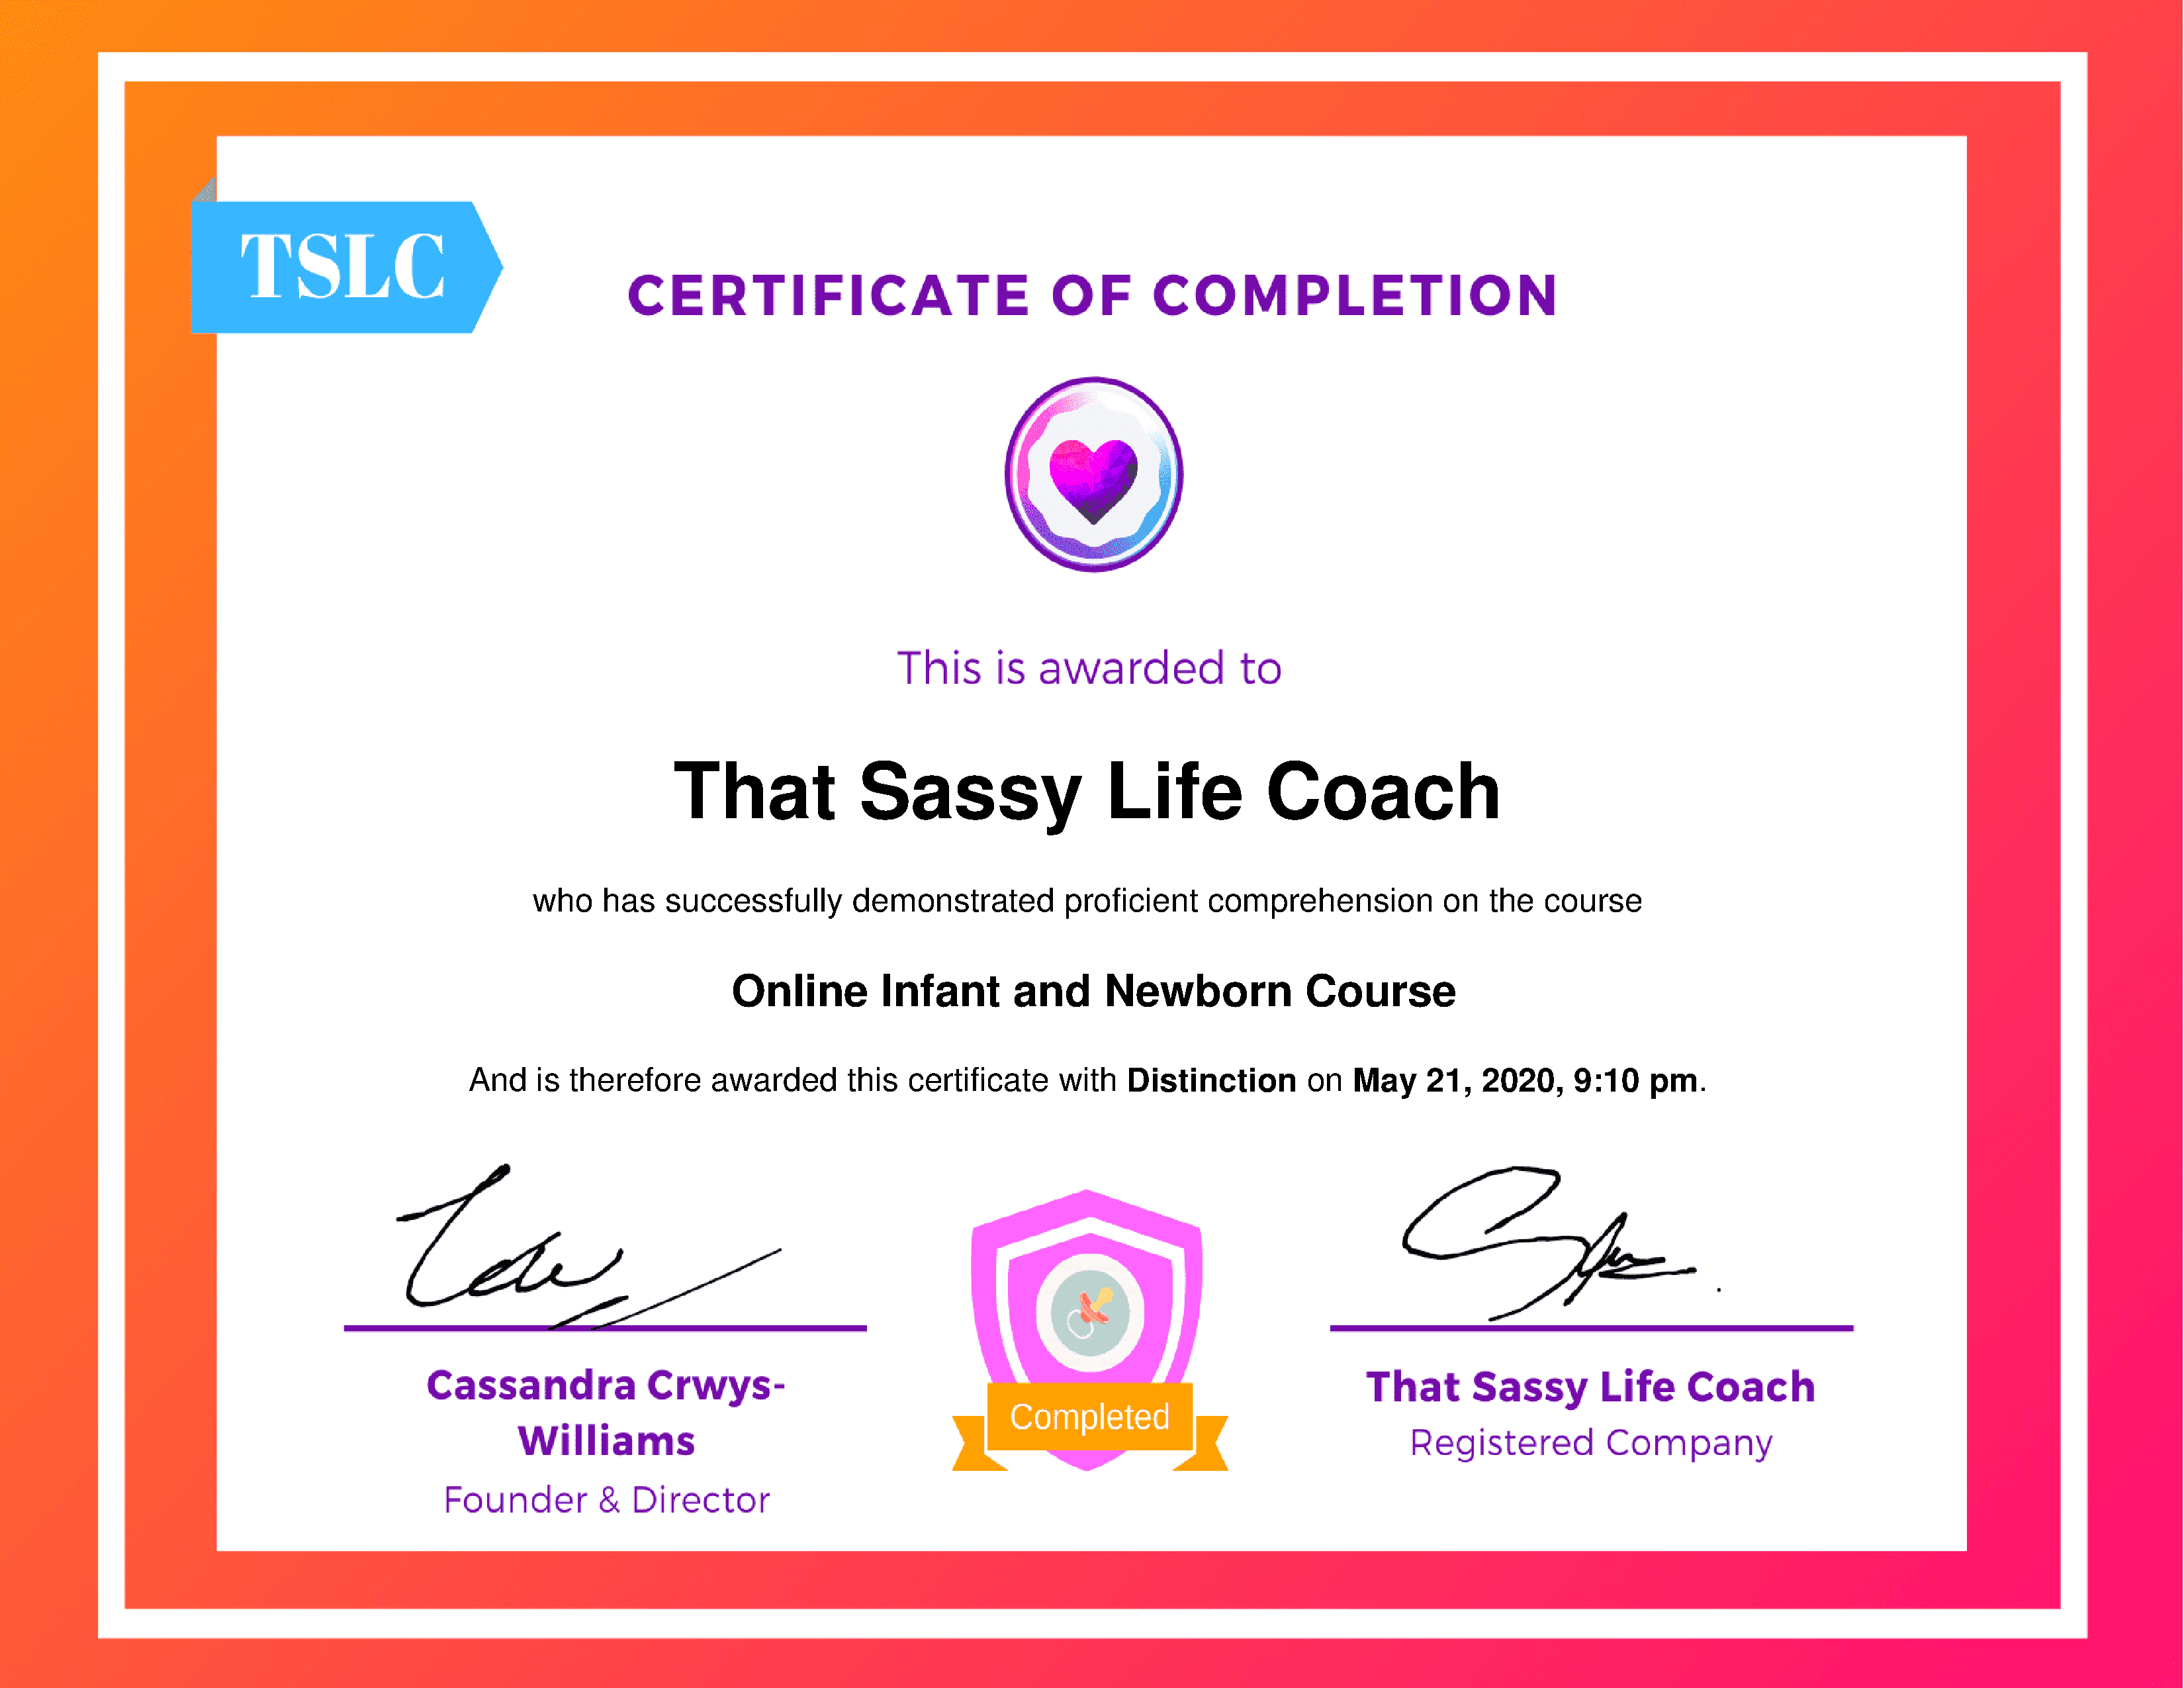 Online Infant and Newborn CourseThat Sassy Life Coach